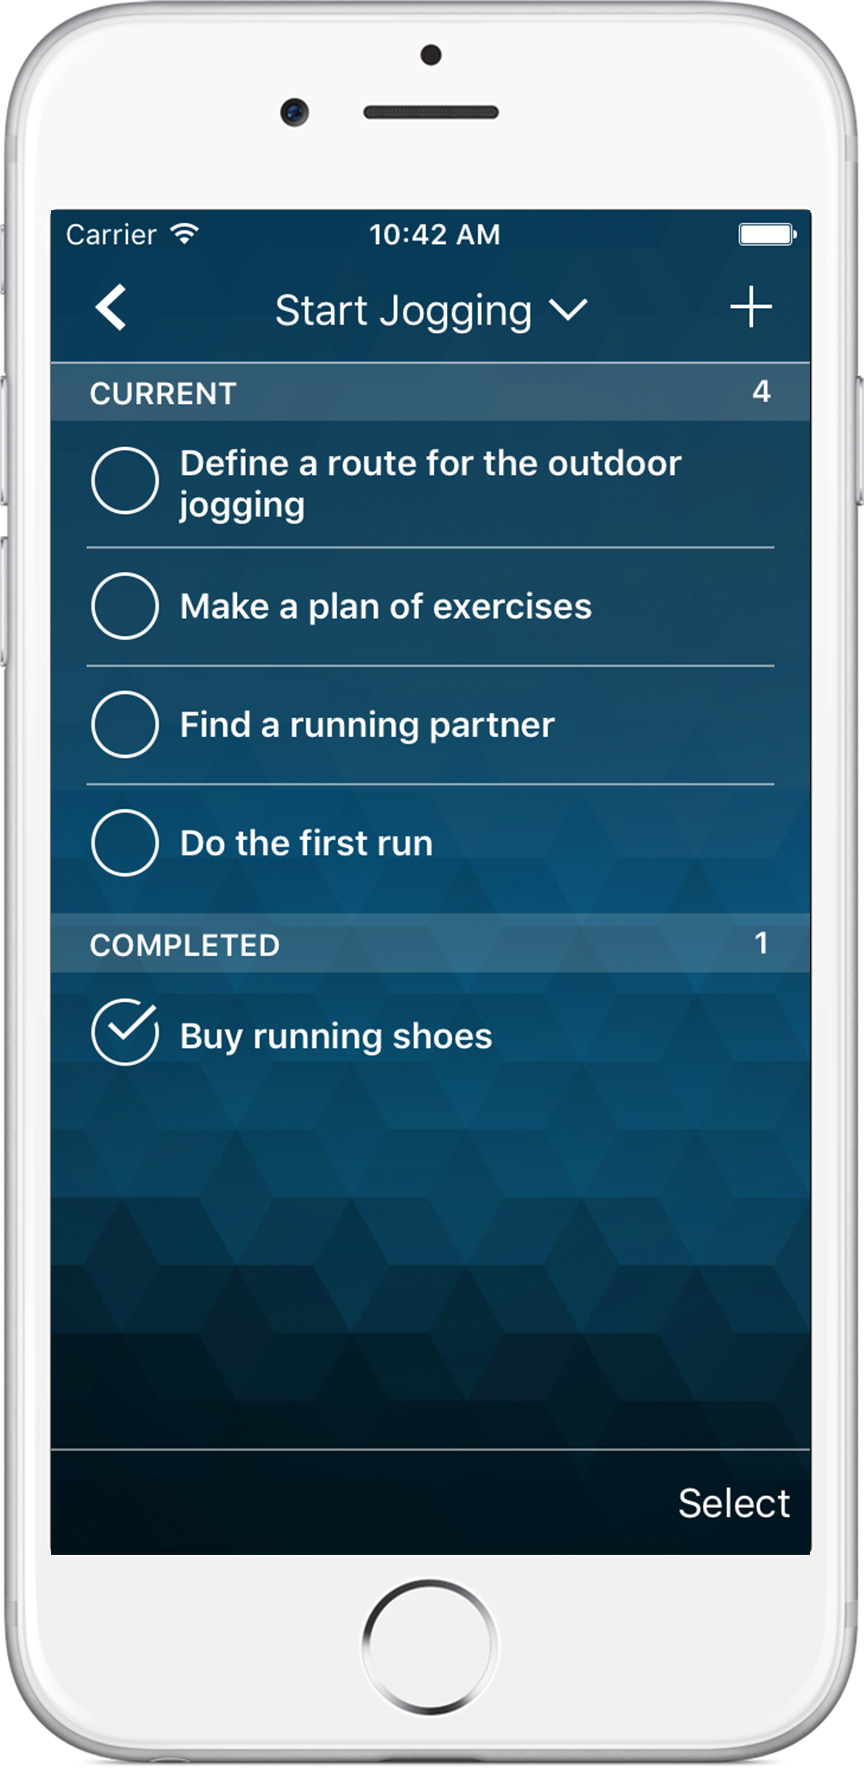 Time Pro for iPhone - To-do list